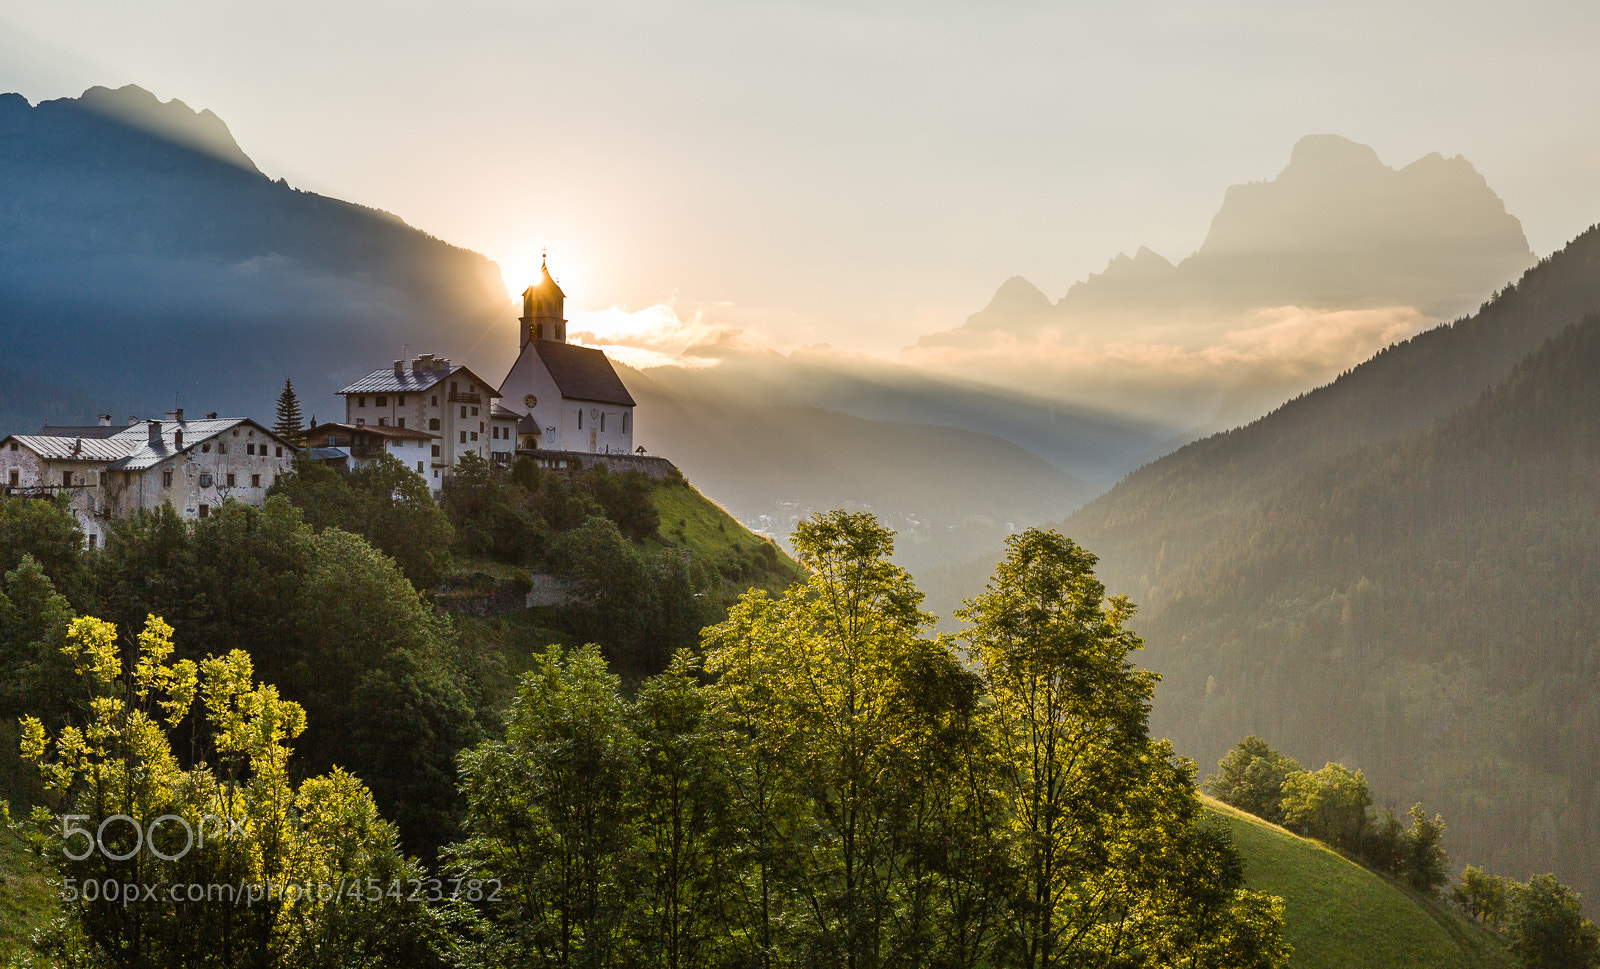 Photograph The church in Colle Santa Lucia in the morning sun by Hans Kruse on 500px